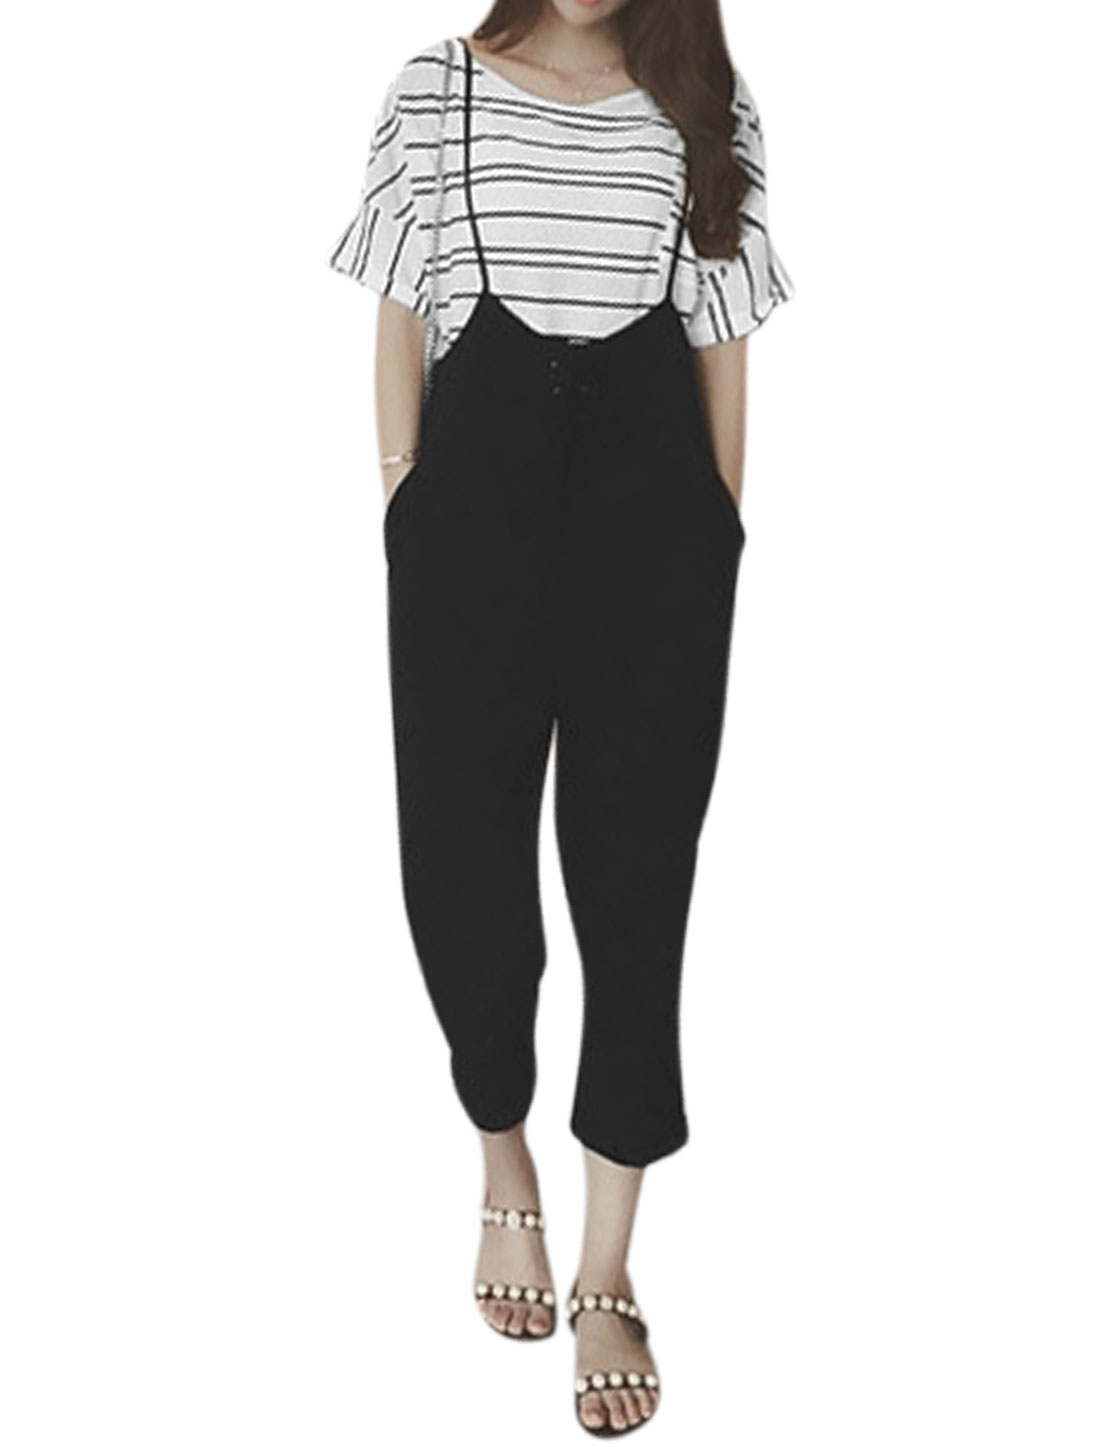 Women Lace Up Front Cropped Harem Cuffed Suspender Pants Black S